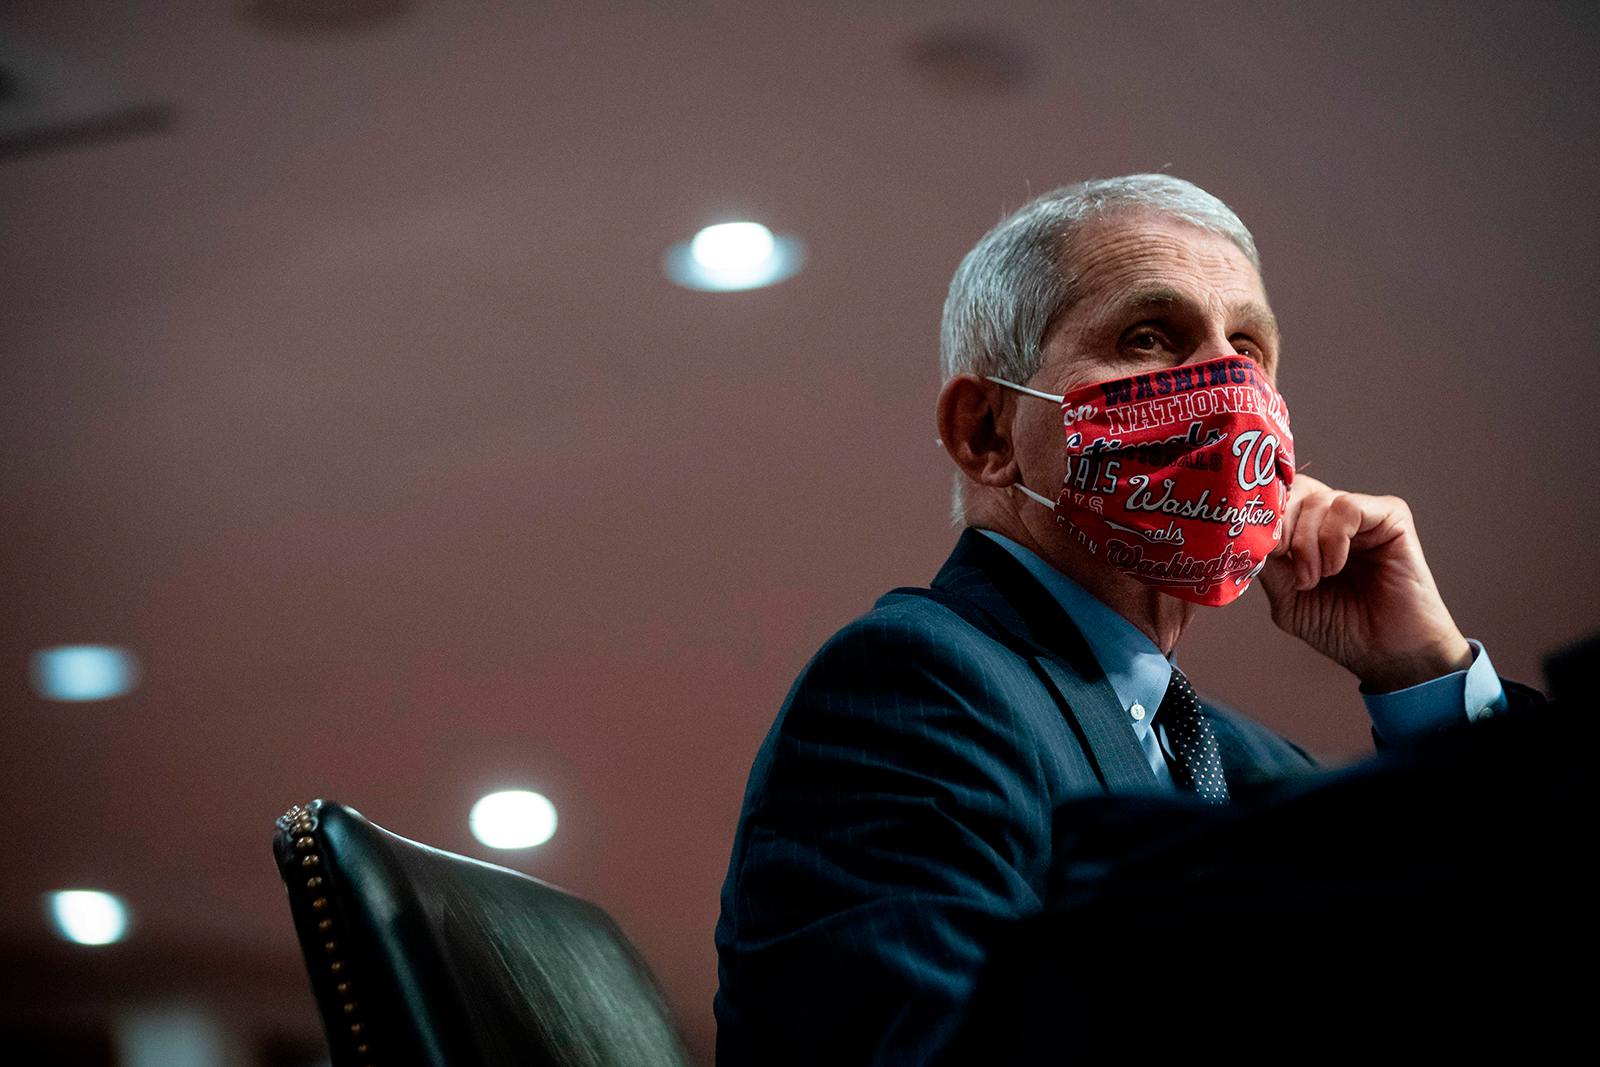 Dr. Anthony Fauci, director of the National Institute of Allergy and Infectious Diseases, wears a face covering as he listens during a Senate Health, Education, Labor and Pensions Committee hearing in Washington, DC, on June 30.